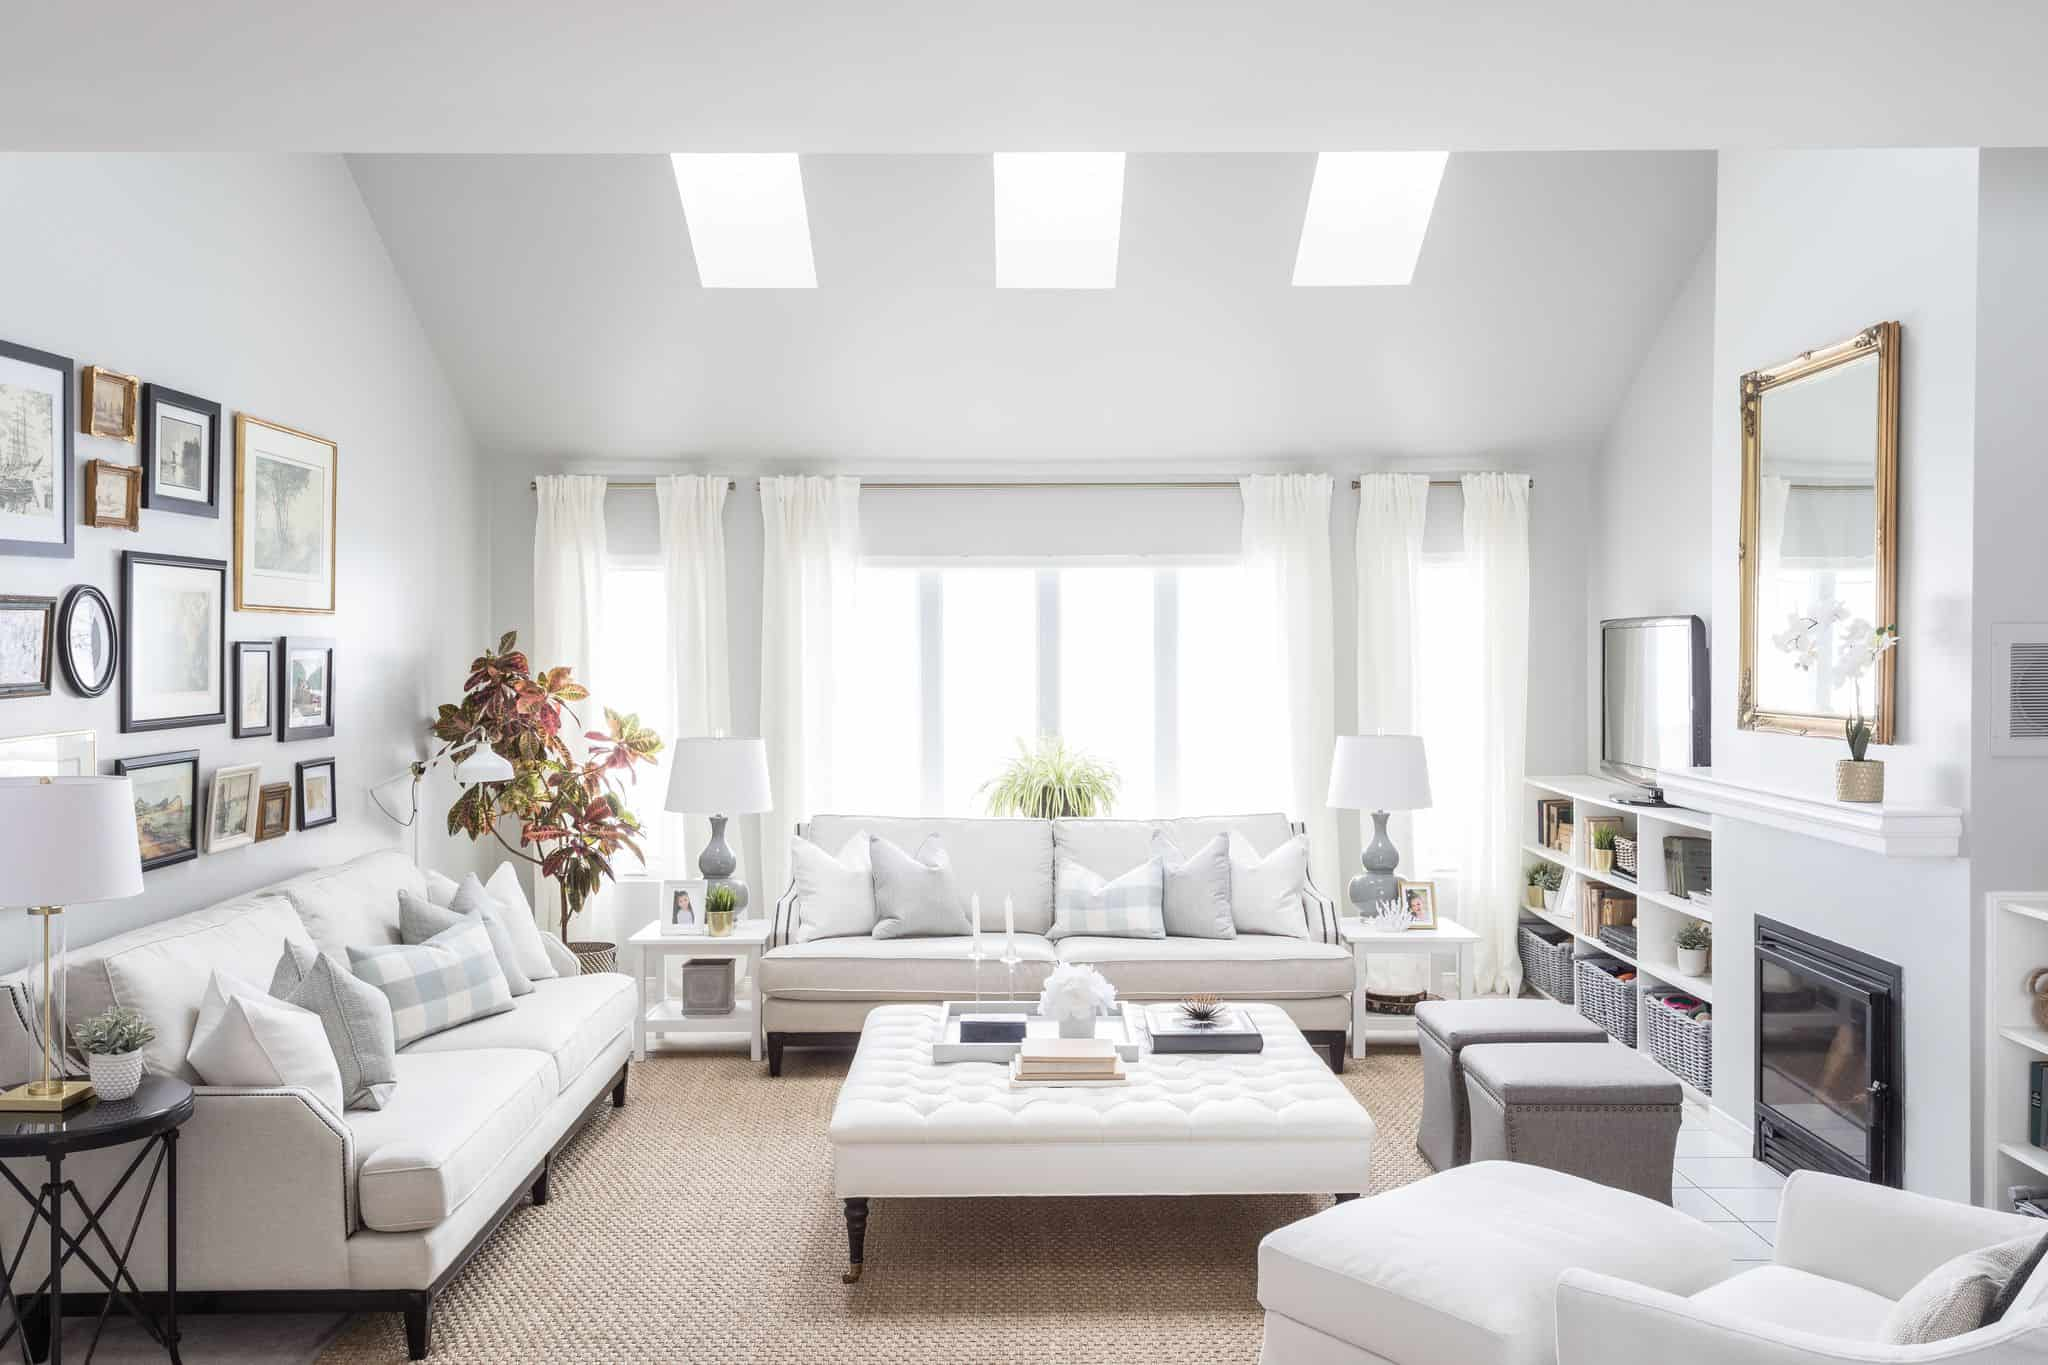 Bright white living room with a bright window above a couch